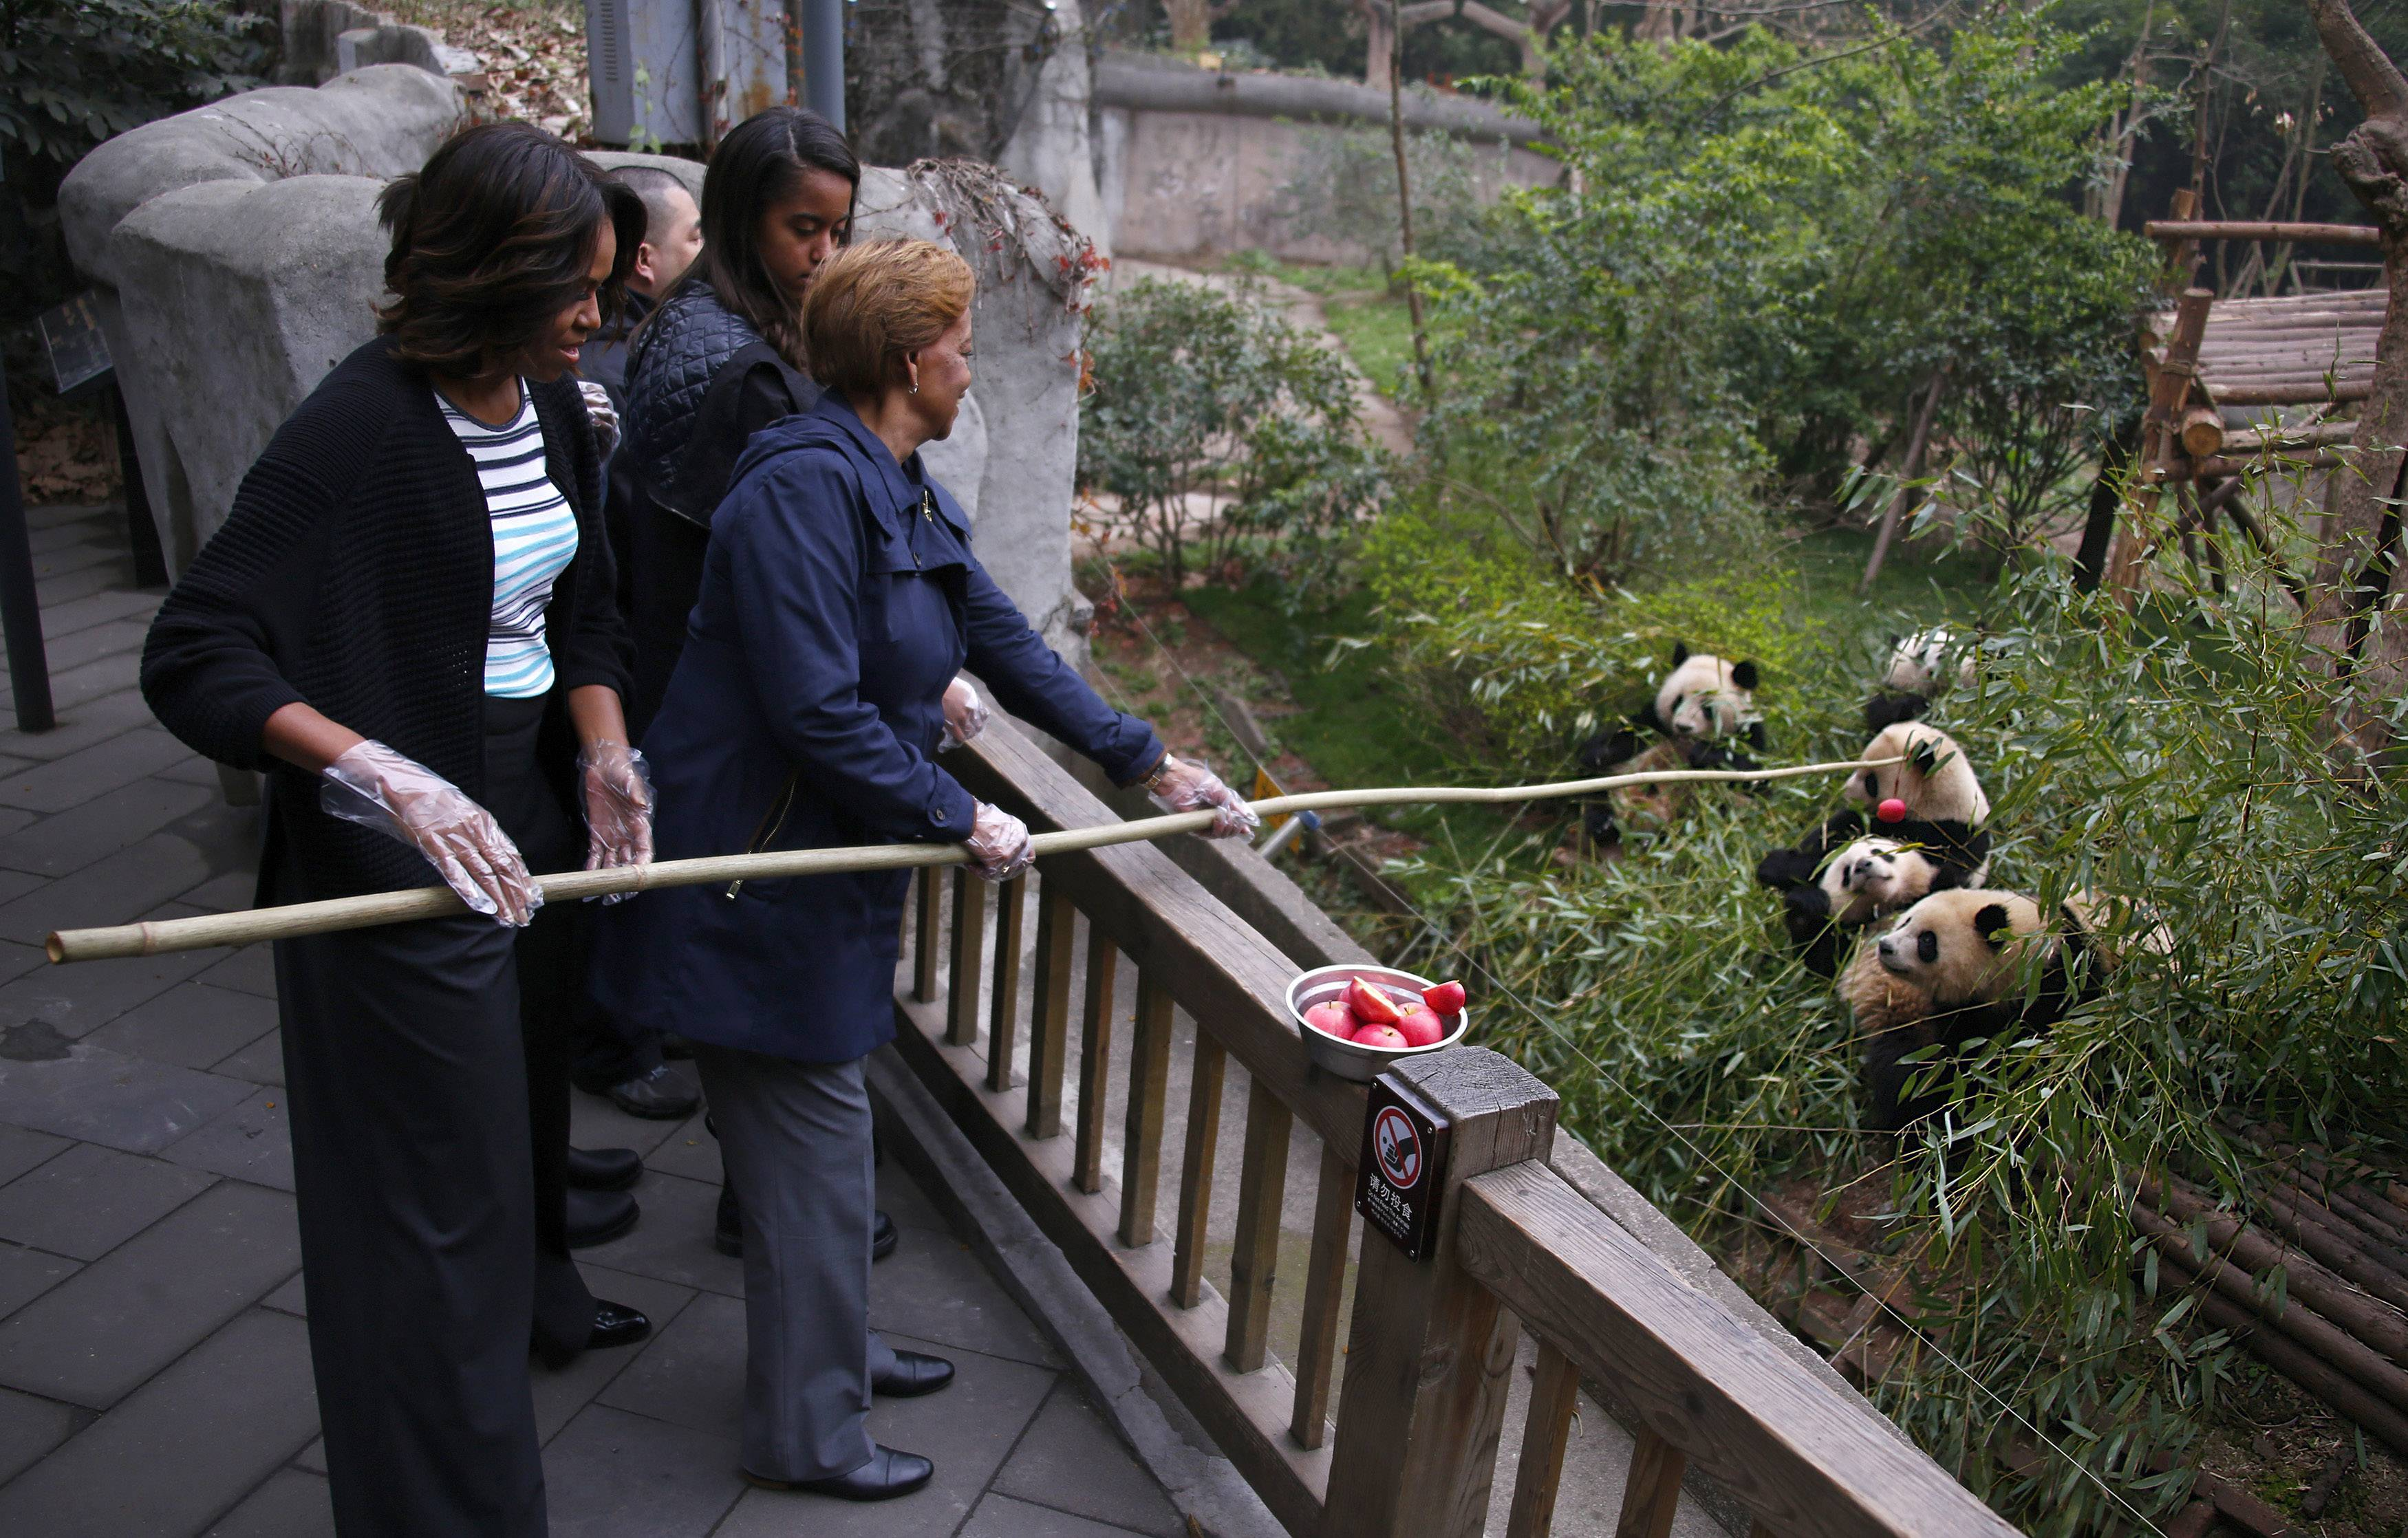 U.S. first lady Michelle Obama, left, and her mother Marian Robinson, right, feed apple to giant pandas during their visit at Giant Panda Research Base in Chengdu, Sichuan province, China Wednesday, March 26, 2014.